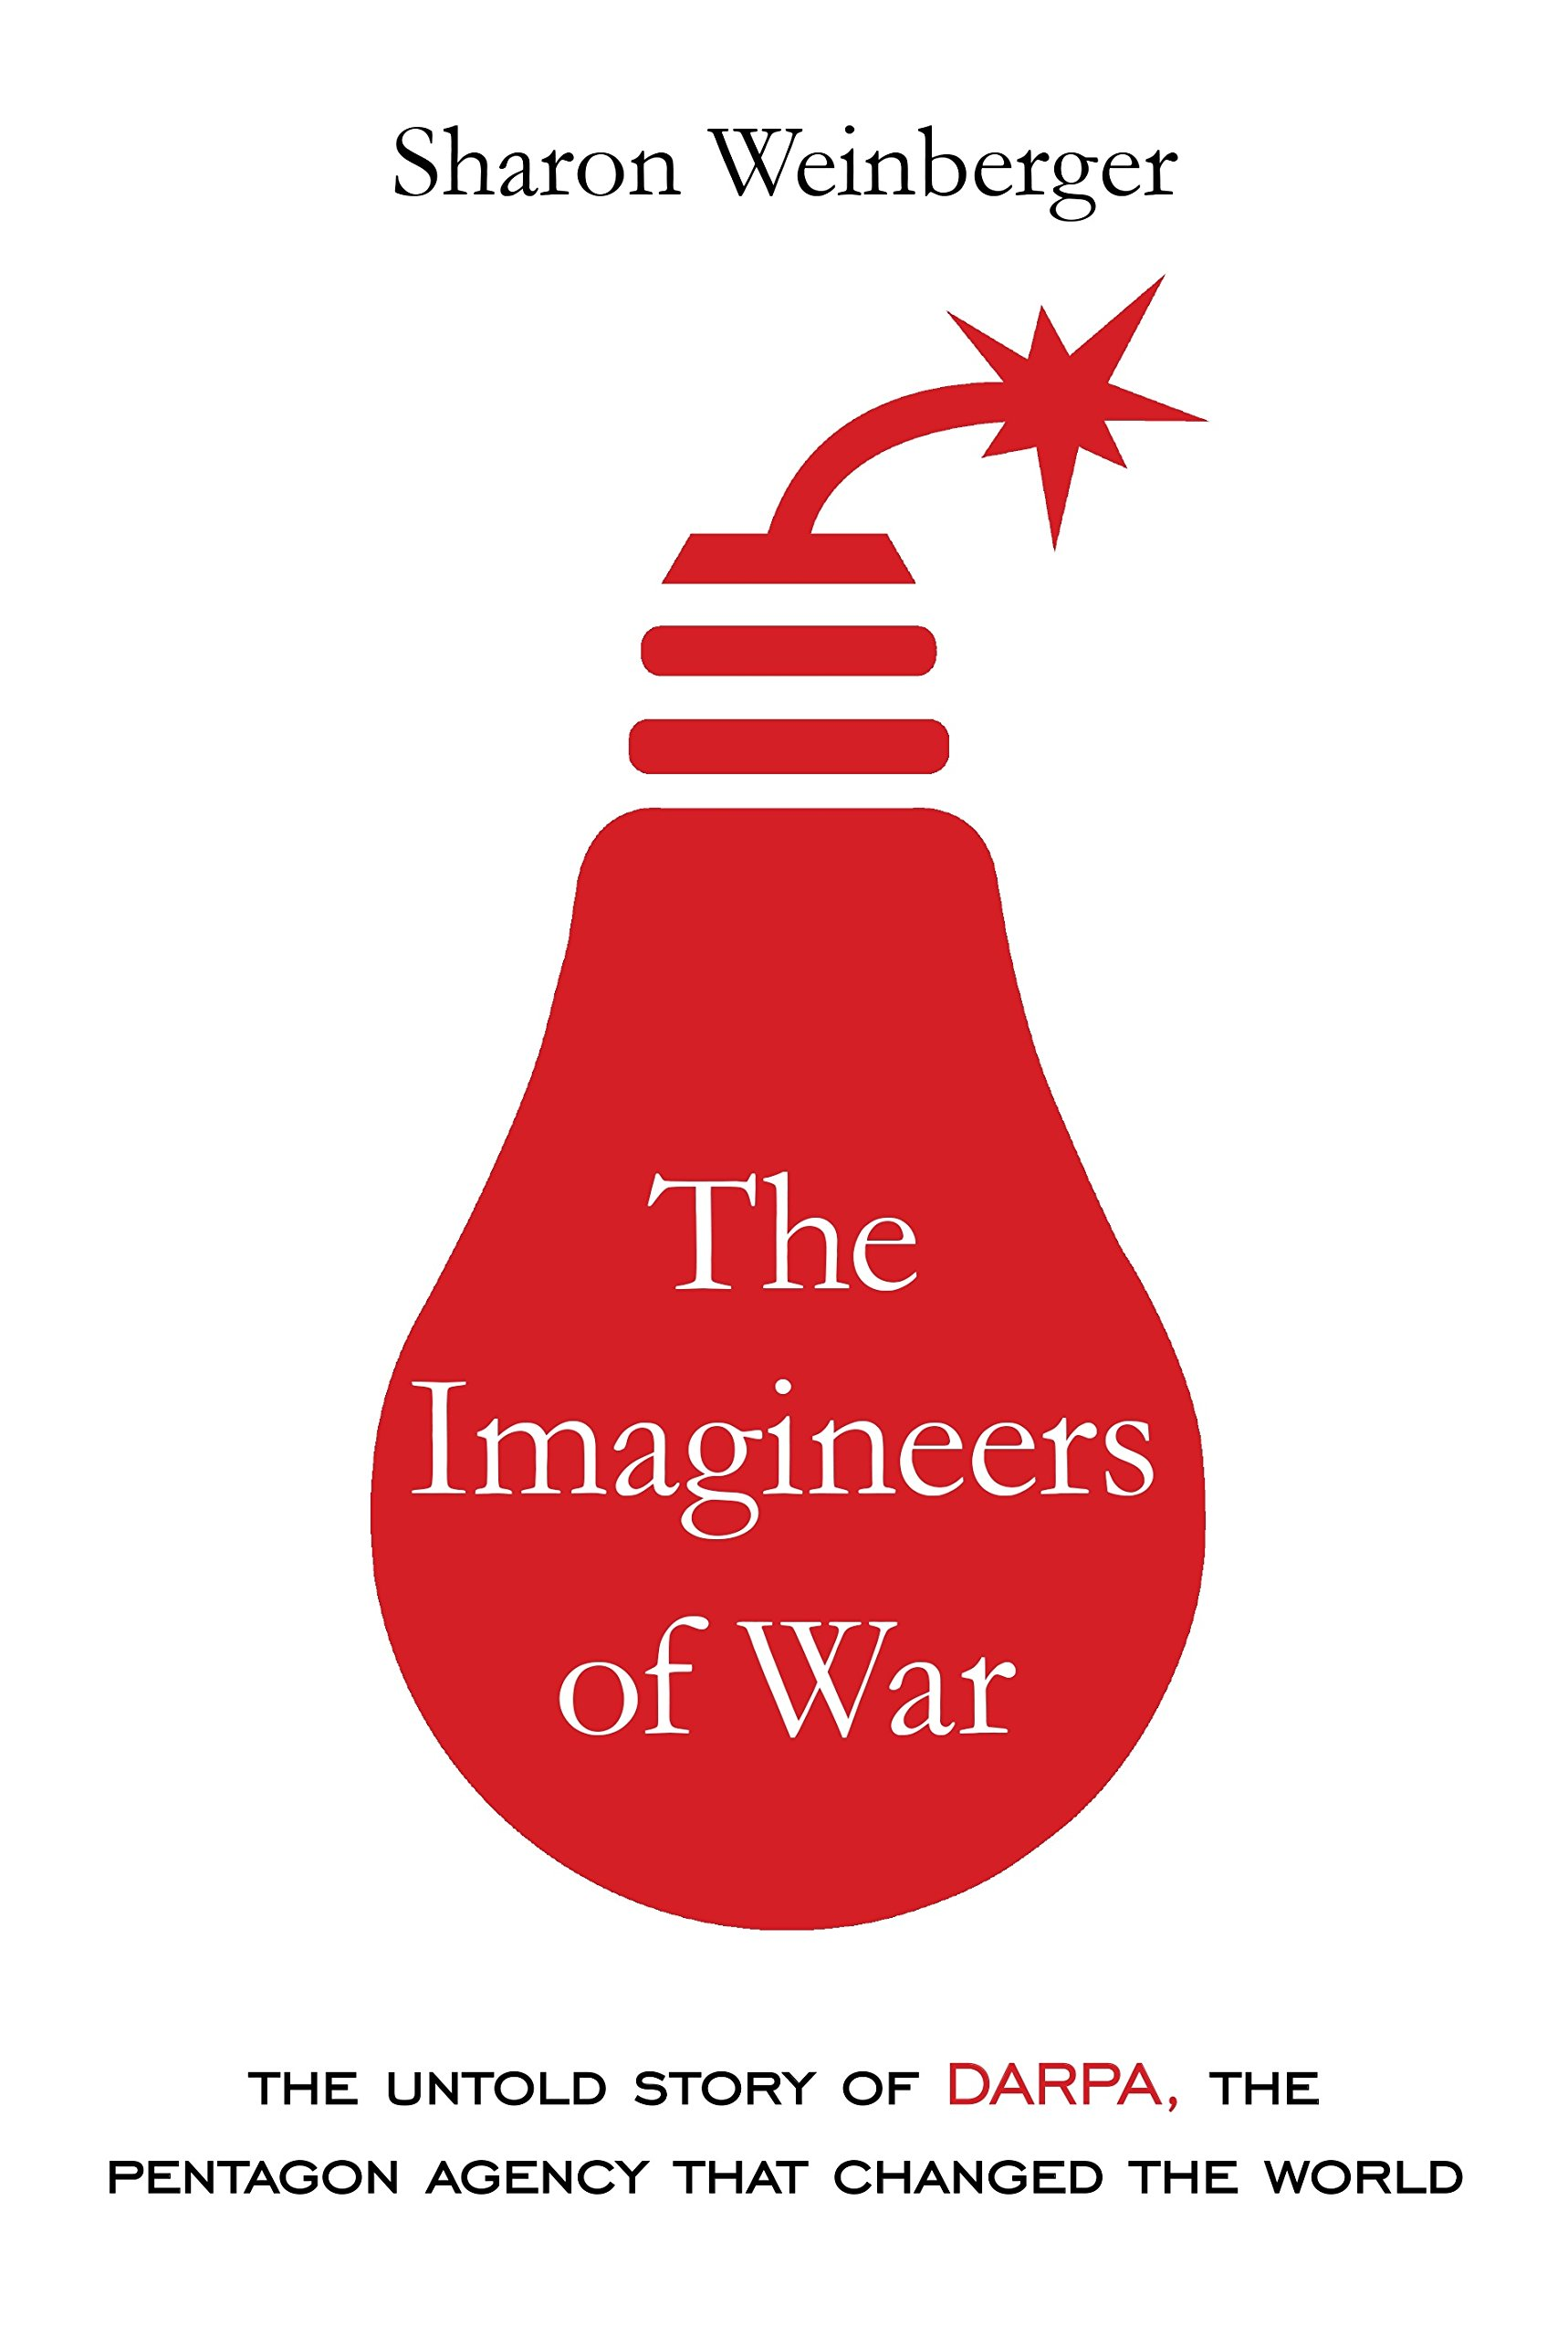 The imagineers of war the untold story of darpa the pentagon the imagineers of war the untold story of darpa the pentagon agency that changed the world sharon weinberger 9780385351799 amazon books fandeluxe Gallery